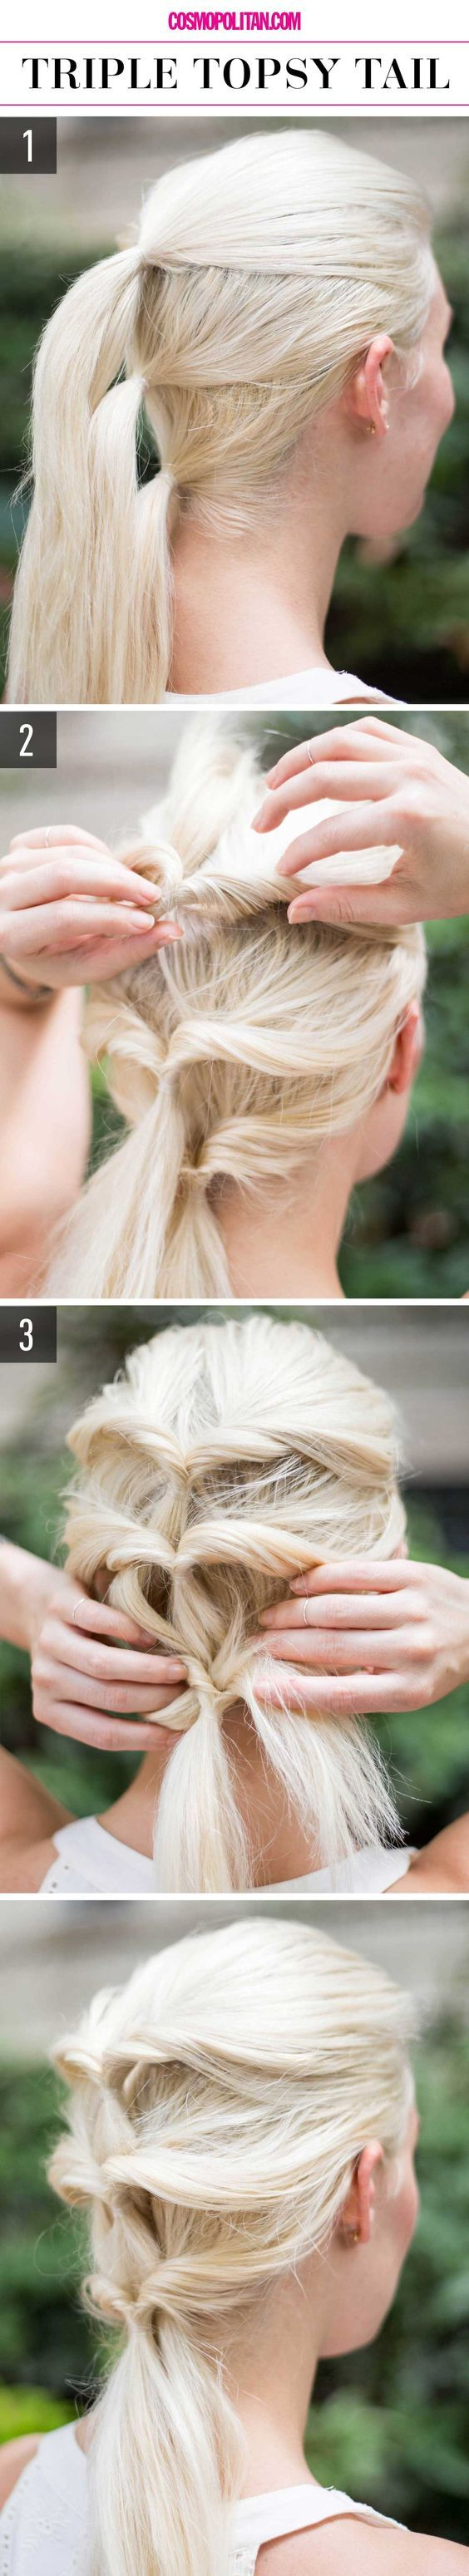 easy hair styles for hair 25 best ideas about lazy hairstyles on 4028